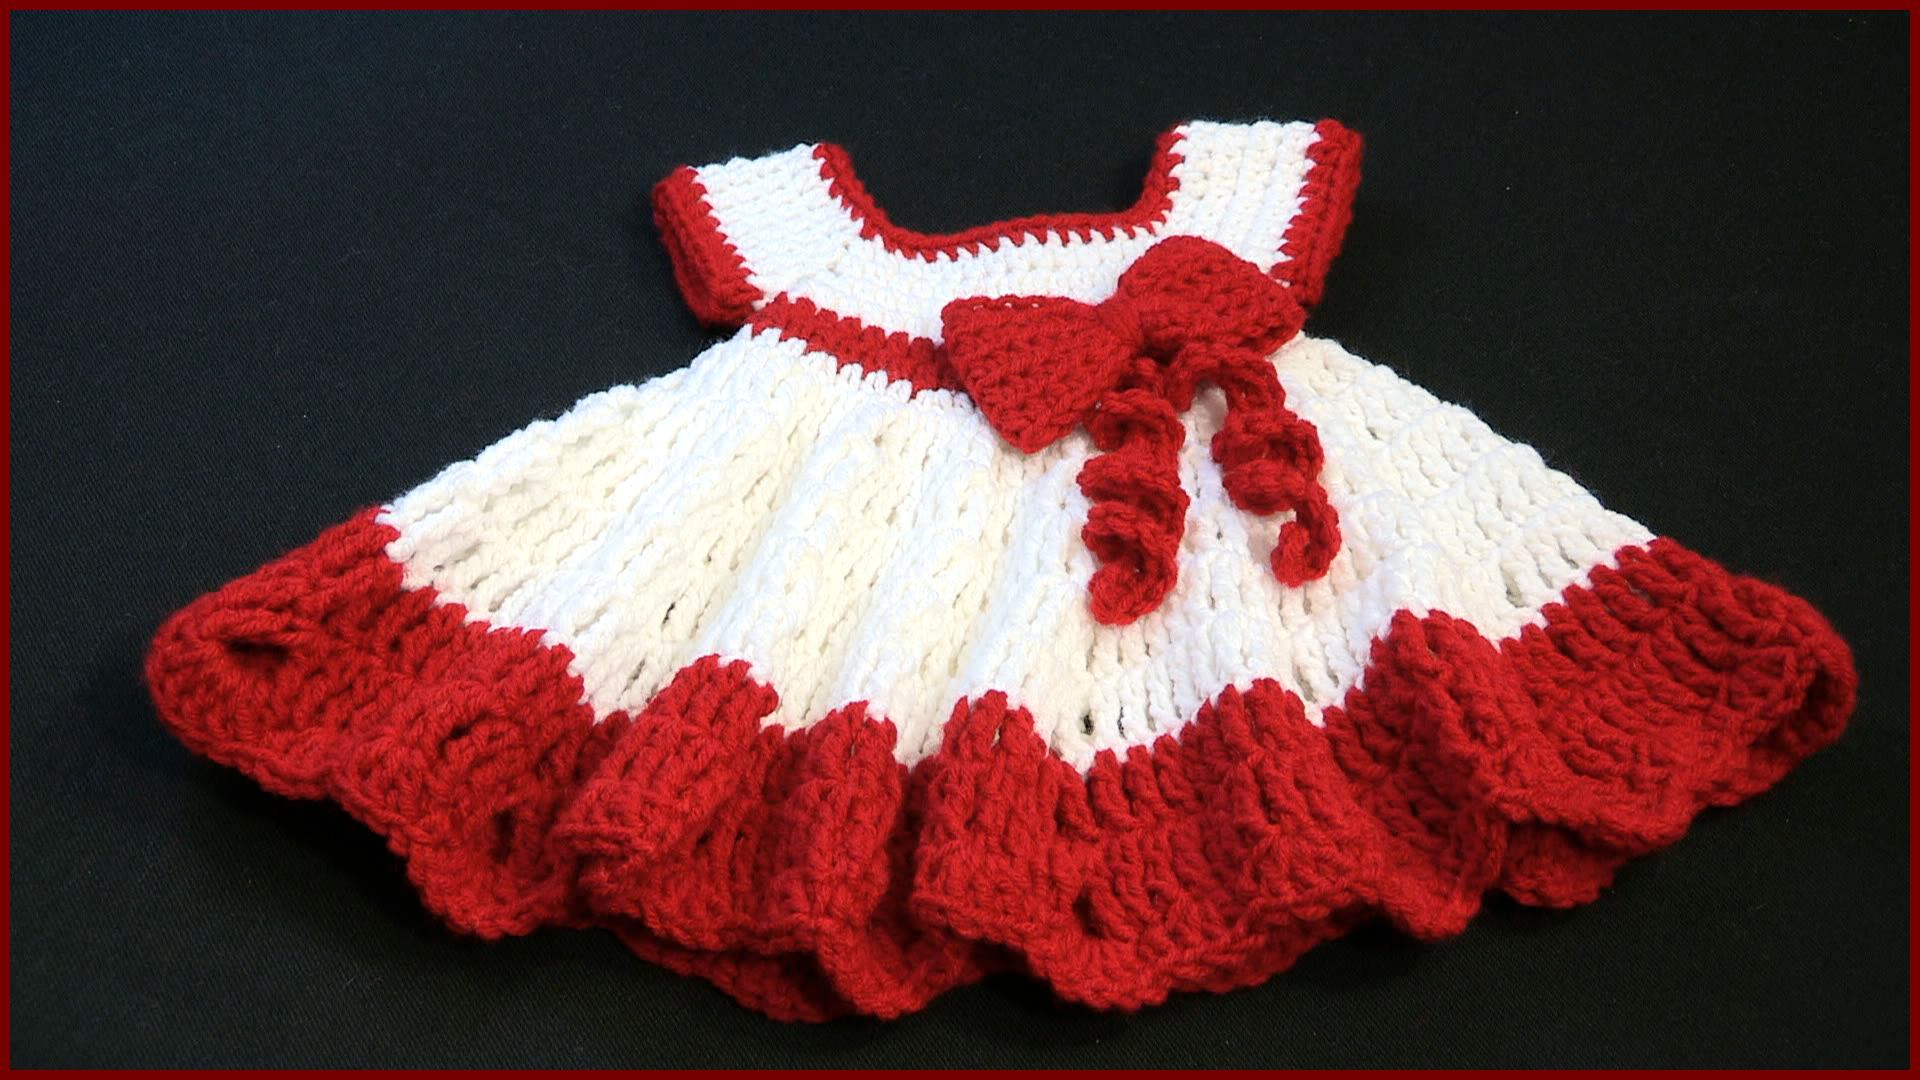 How To Crochet Baby Dress Pattern : Crochet Tutorial: Baby Dress with a Bow YARNutopia by ...